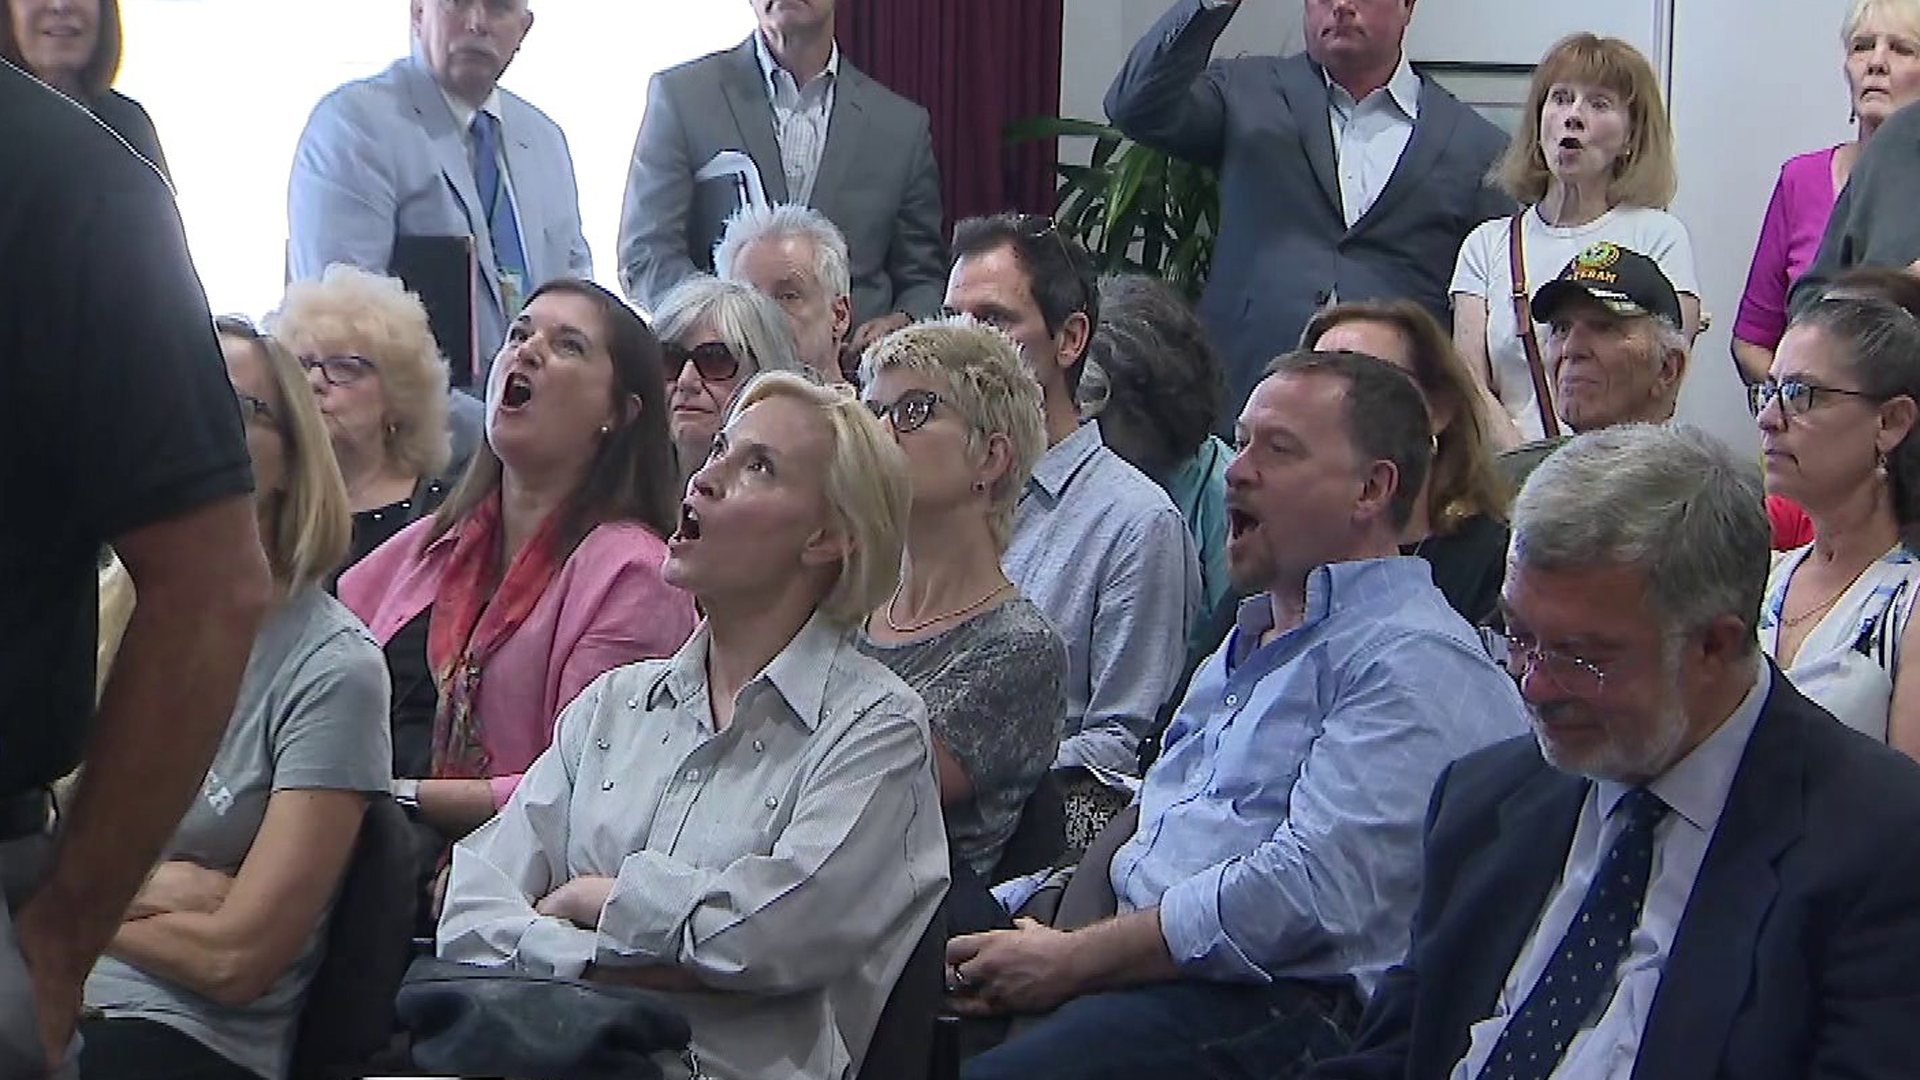 Residents attend a Burbank Airport Authority meeting on July 15, 2019, where they criticized elected leaders for not resolving noise and environmental complaints due to the paths of flights. (Credit: KTLA)